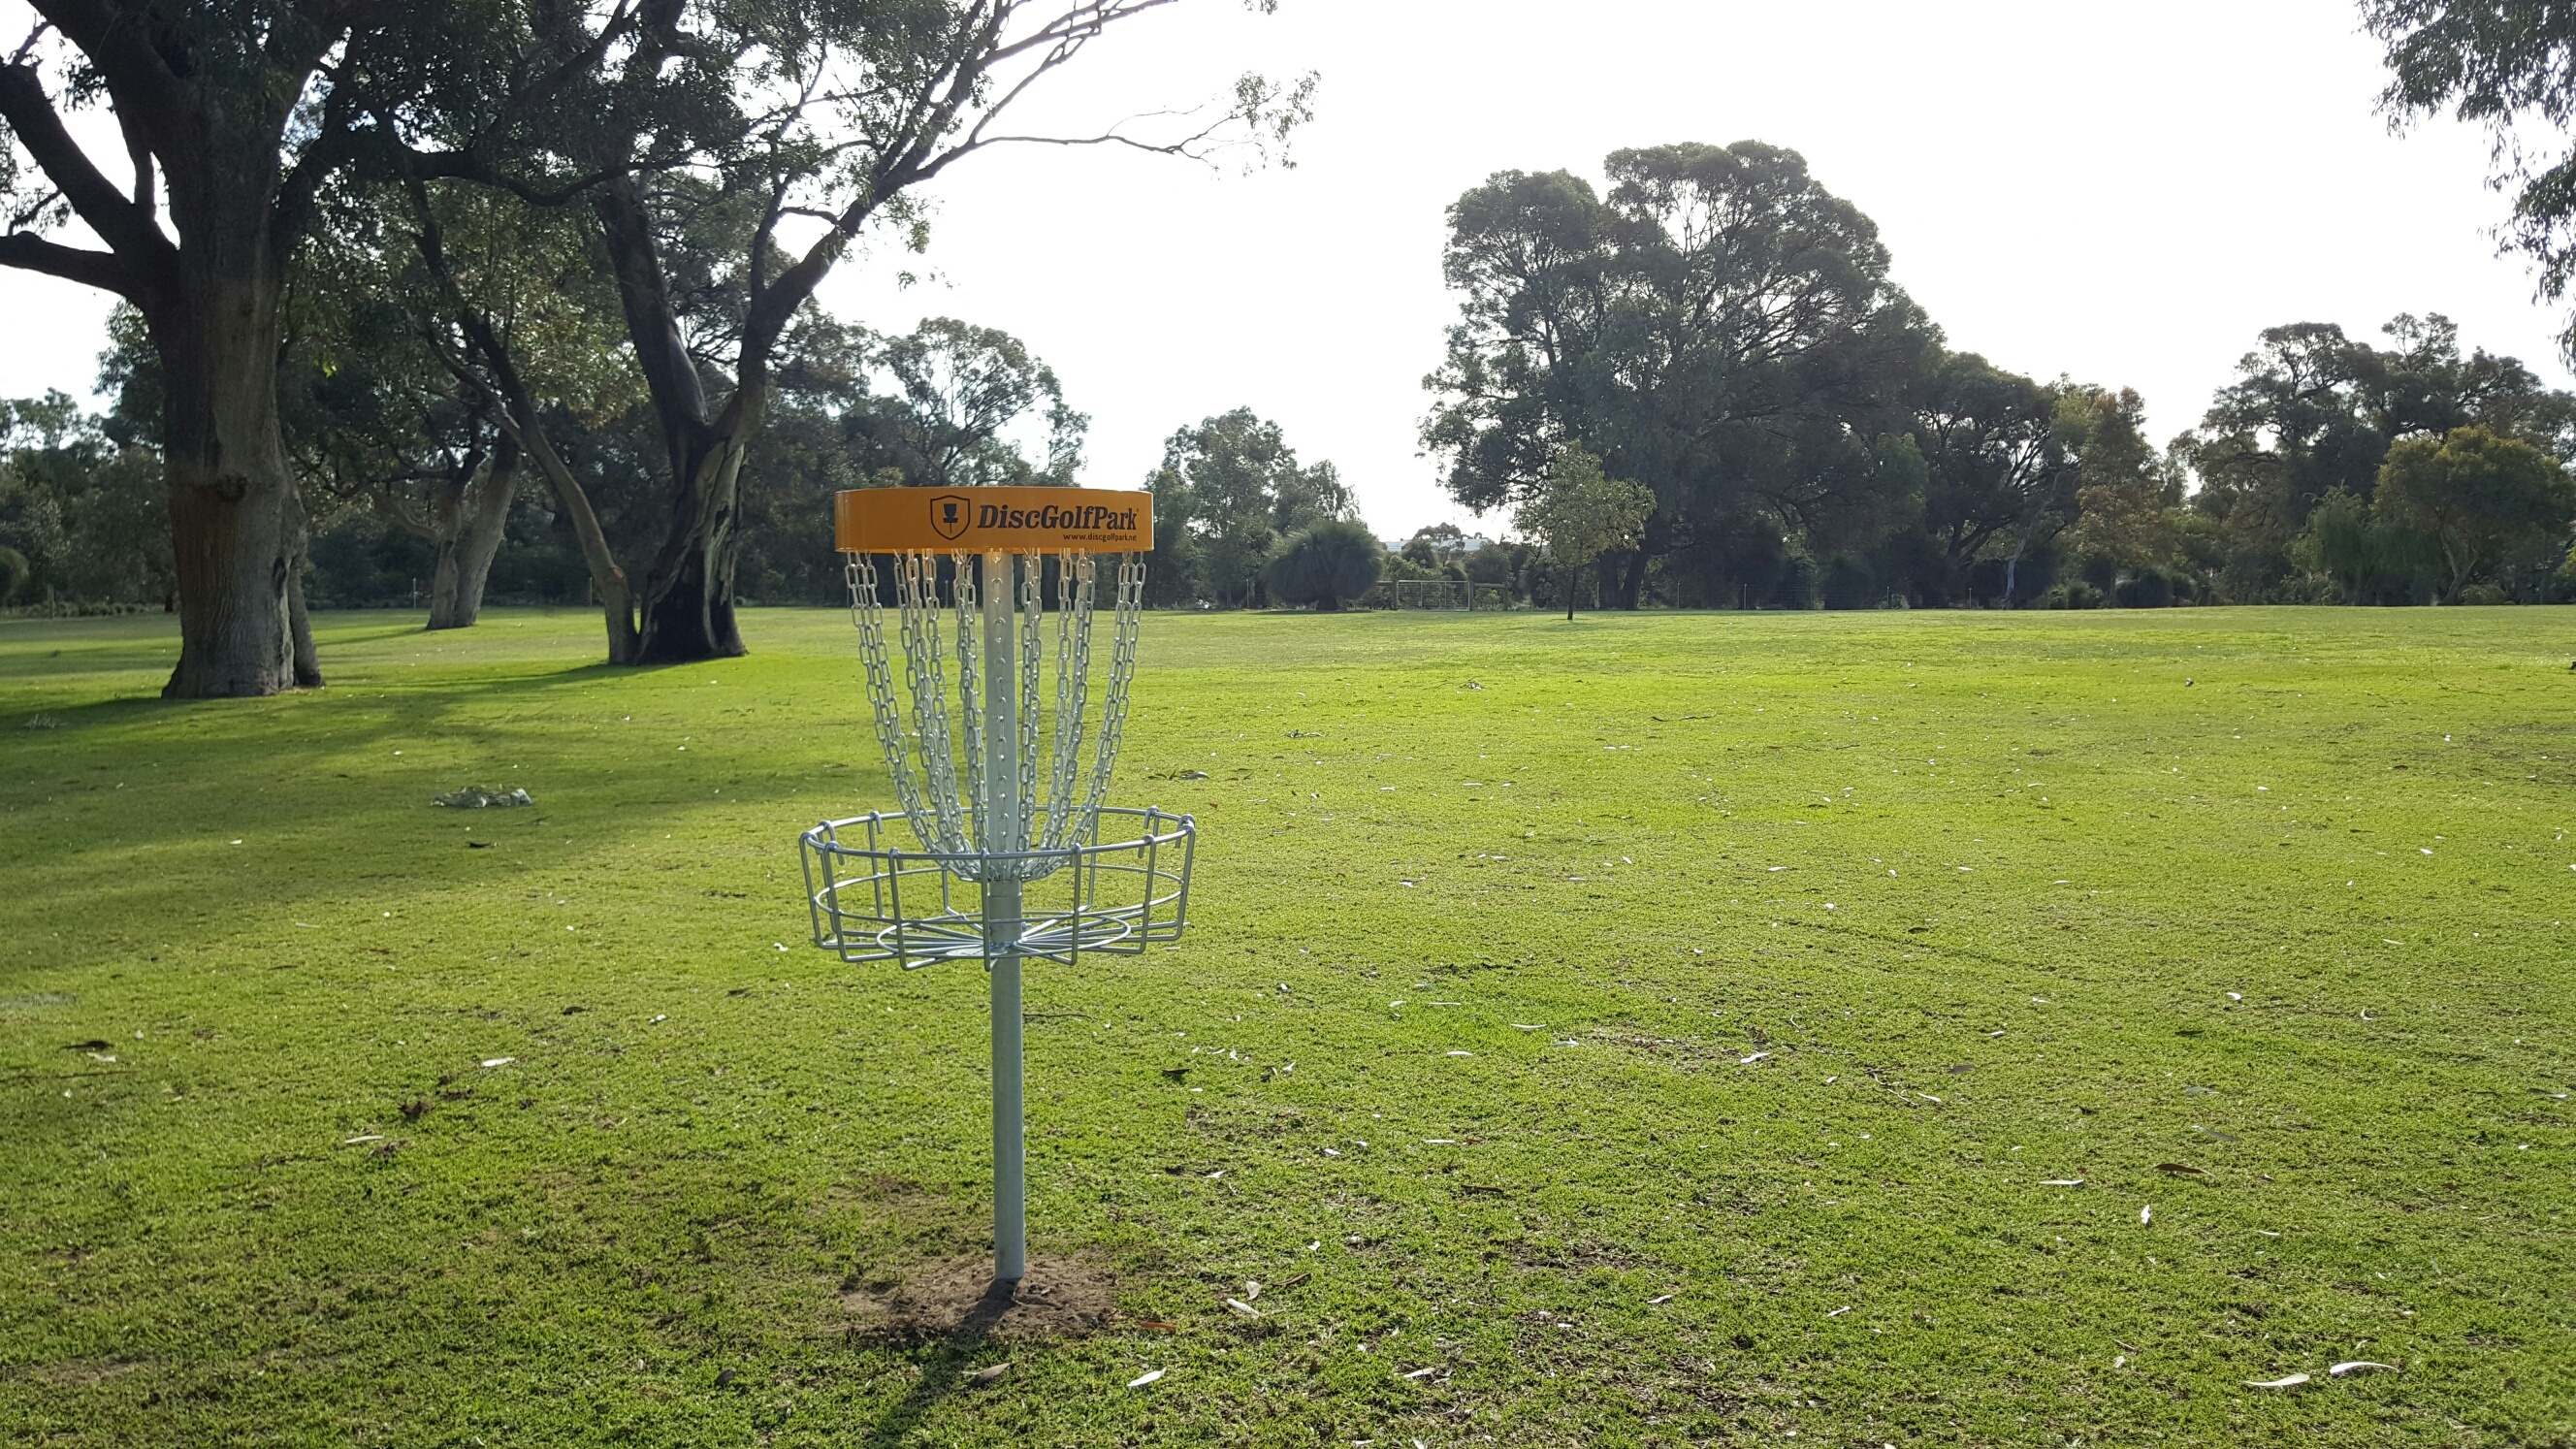 An image showing disc golf park